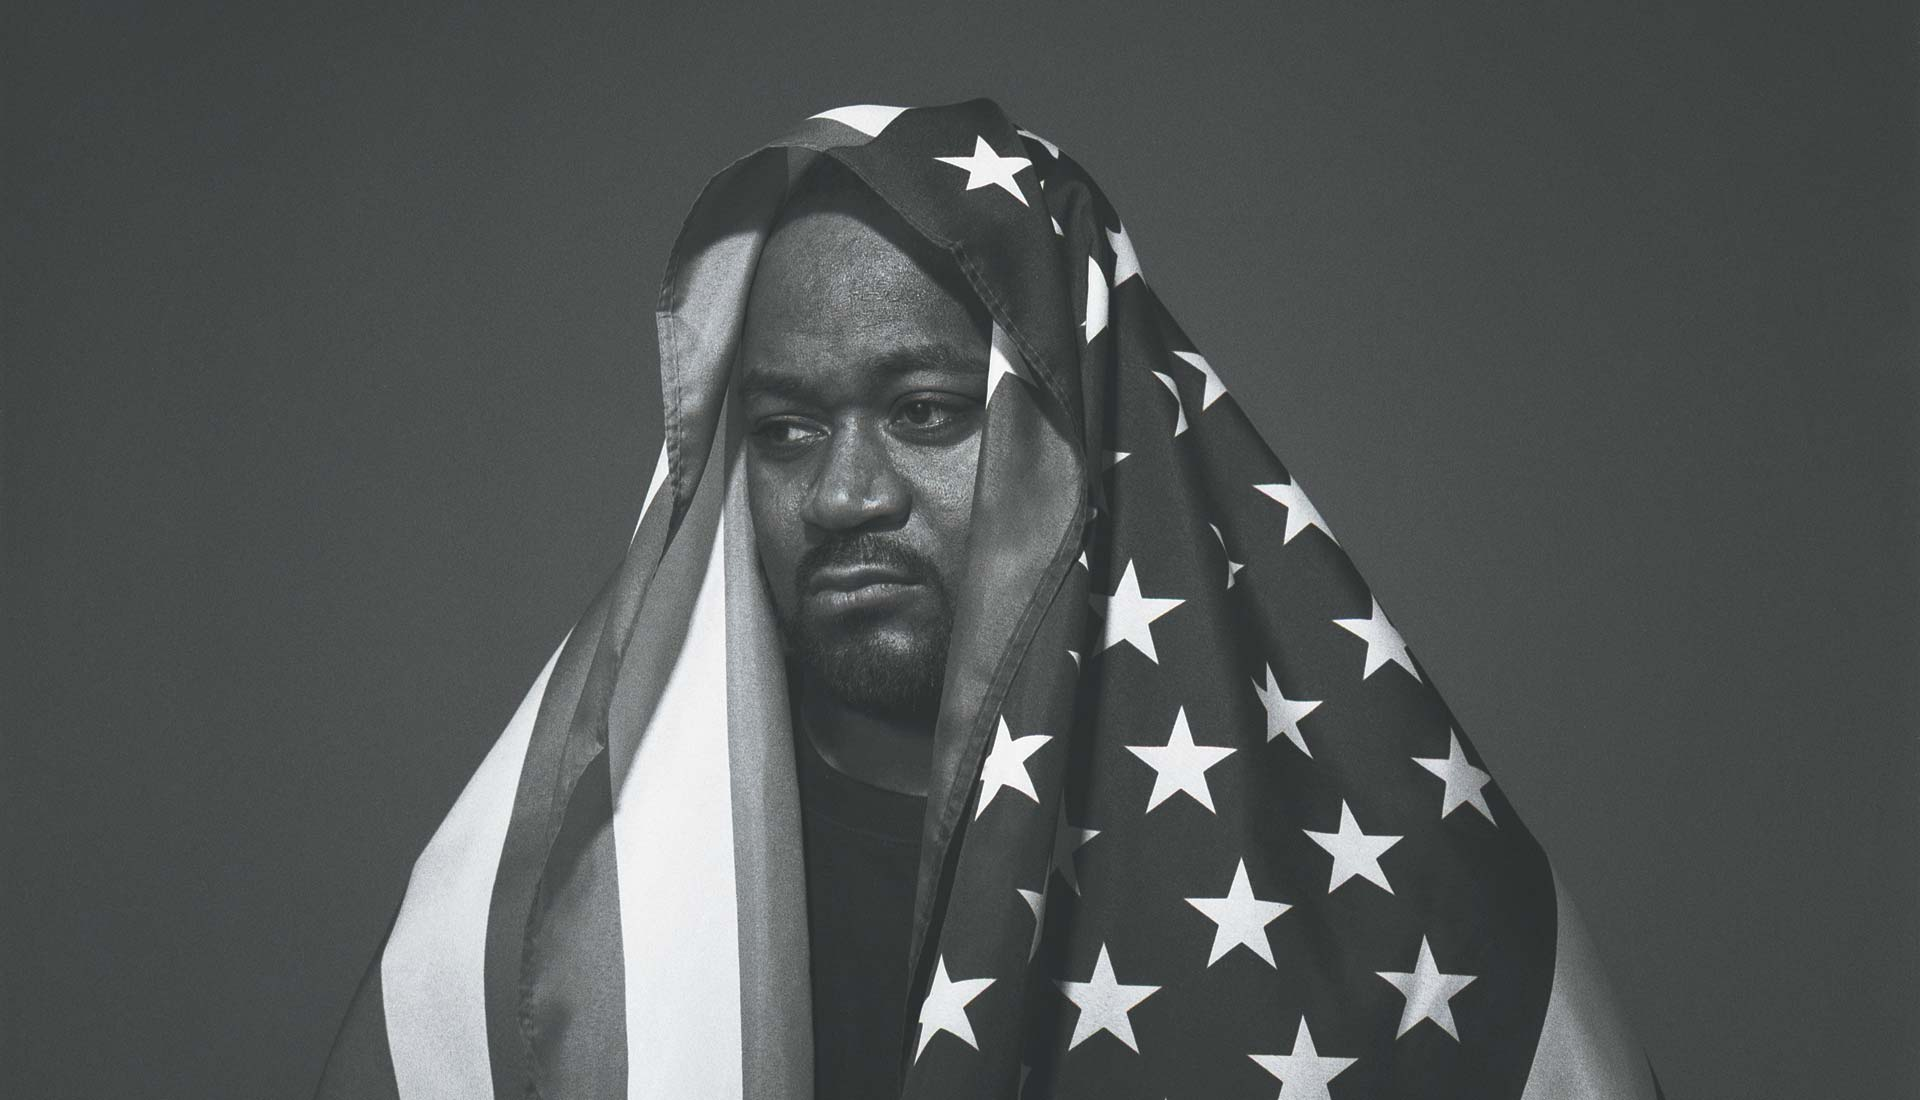 """facebook.com   Wu-Tang Clan rapper Ghostface Killah collaborated with jazz/hip-hop band BadBadNotGood on """"Sour Soul,"""" which released today."""